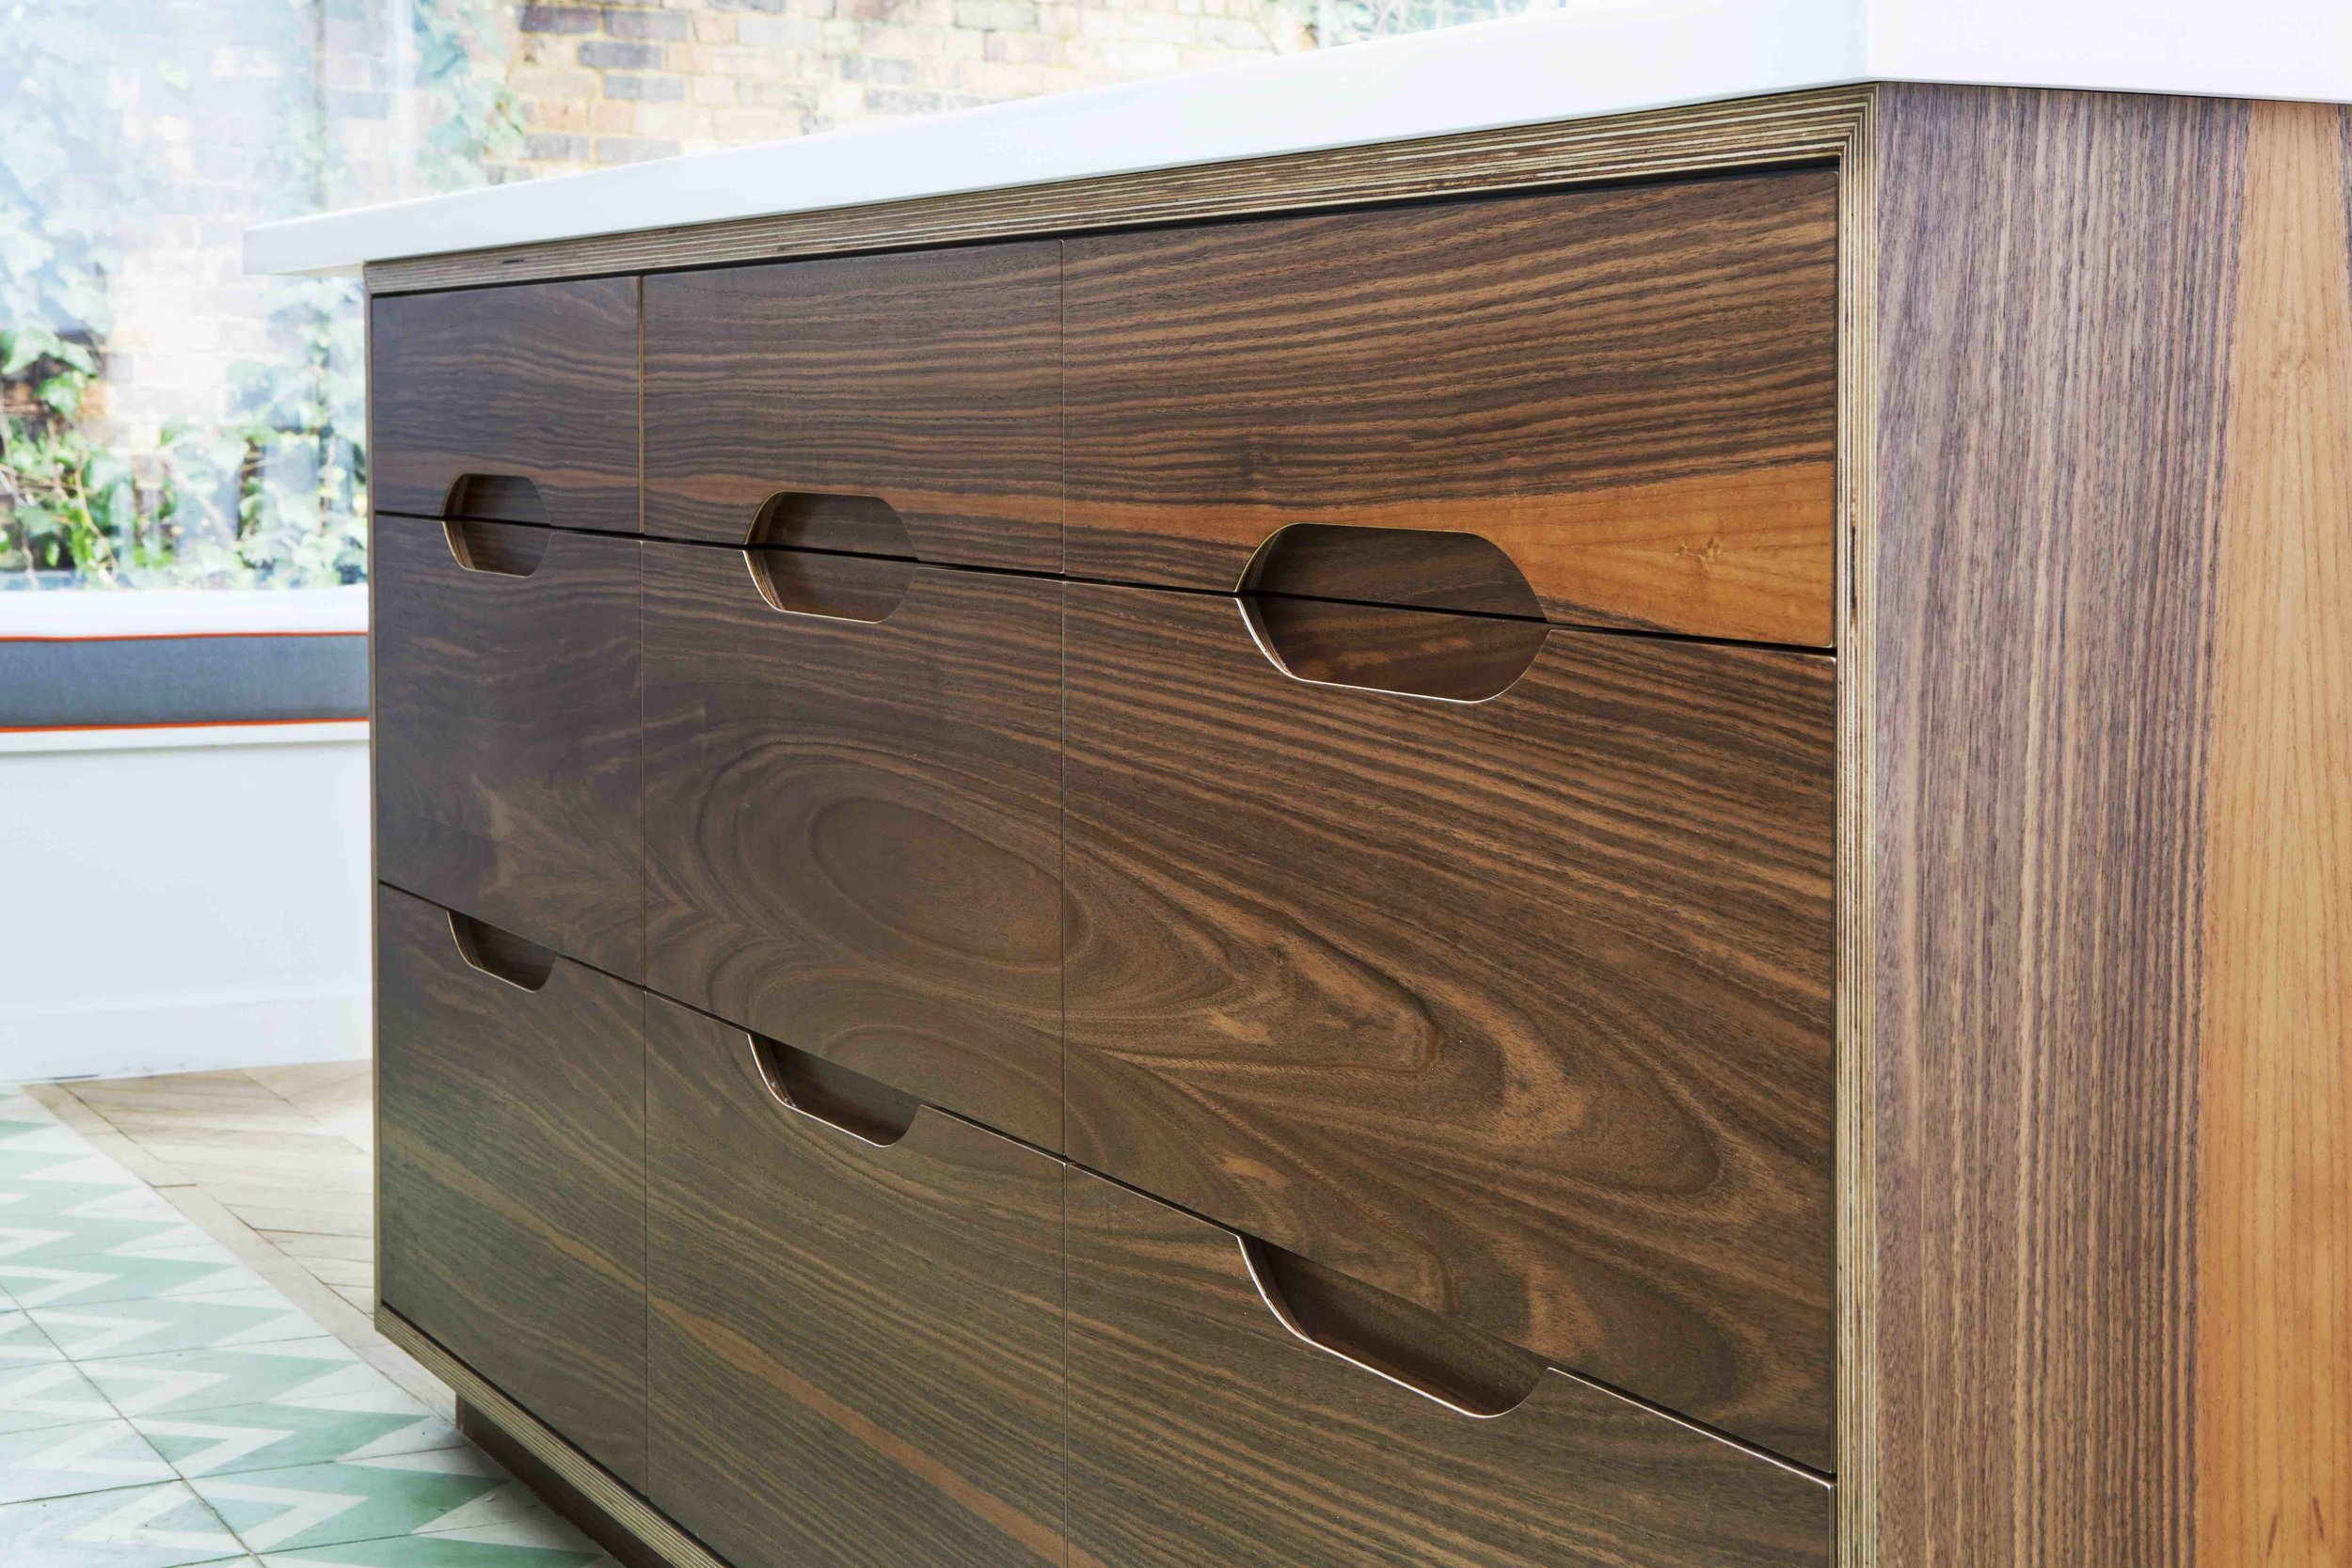 veneered European walnut, birch ply kitchen, drawers, modern kitchen design, London kitchen